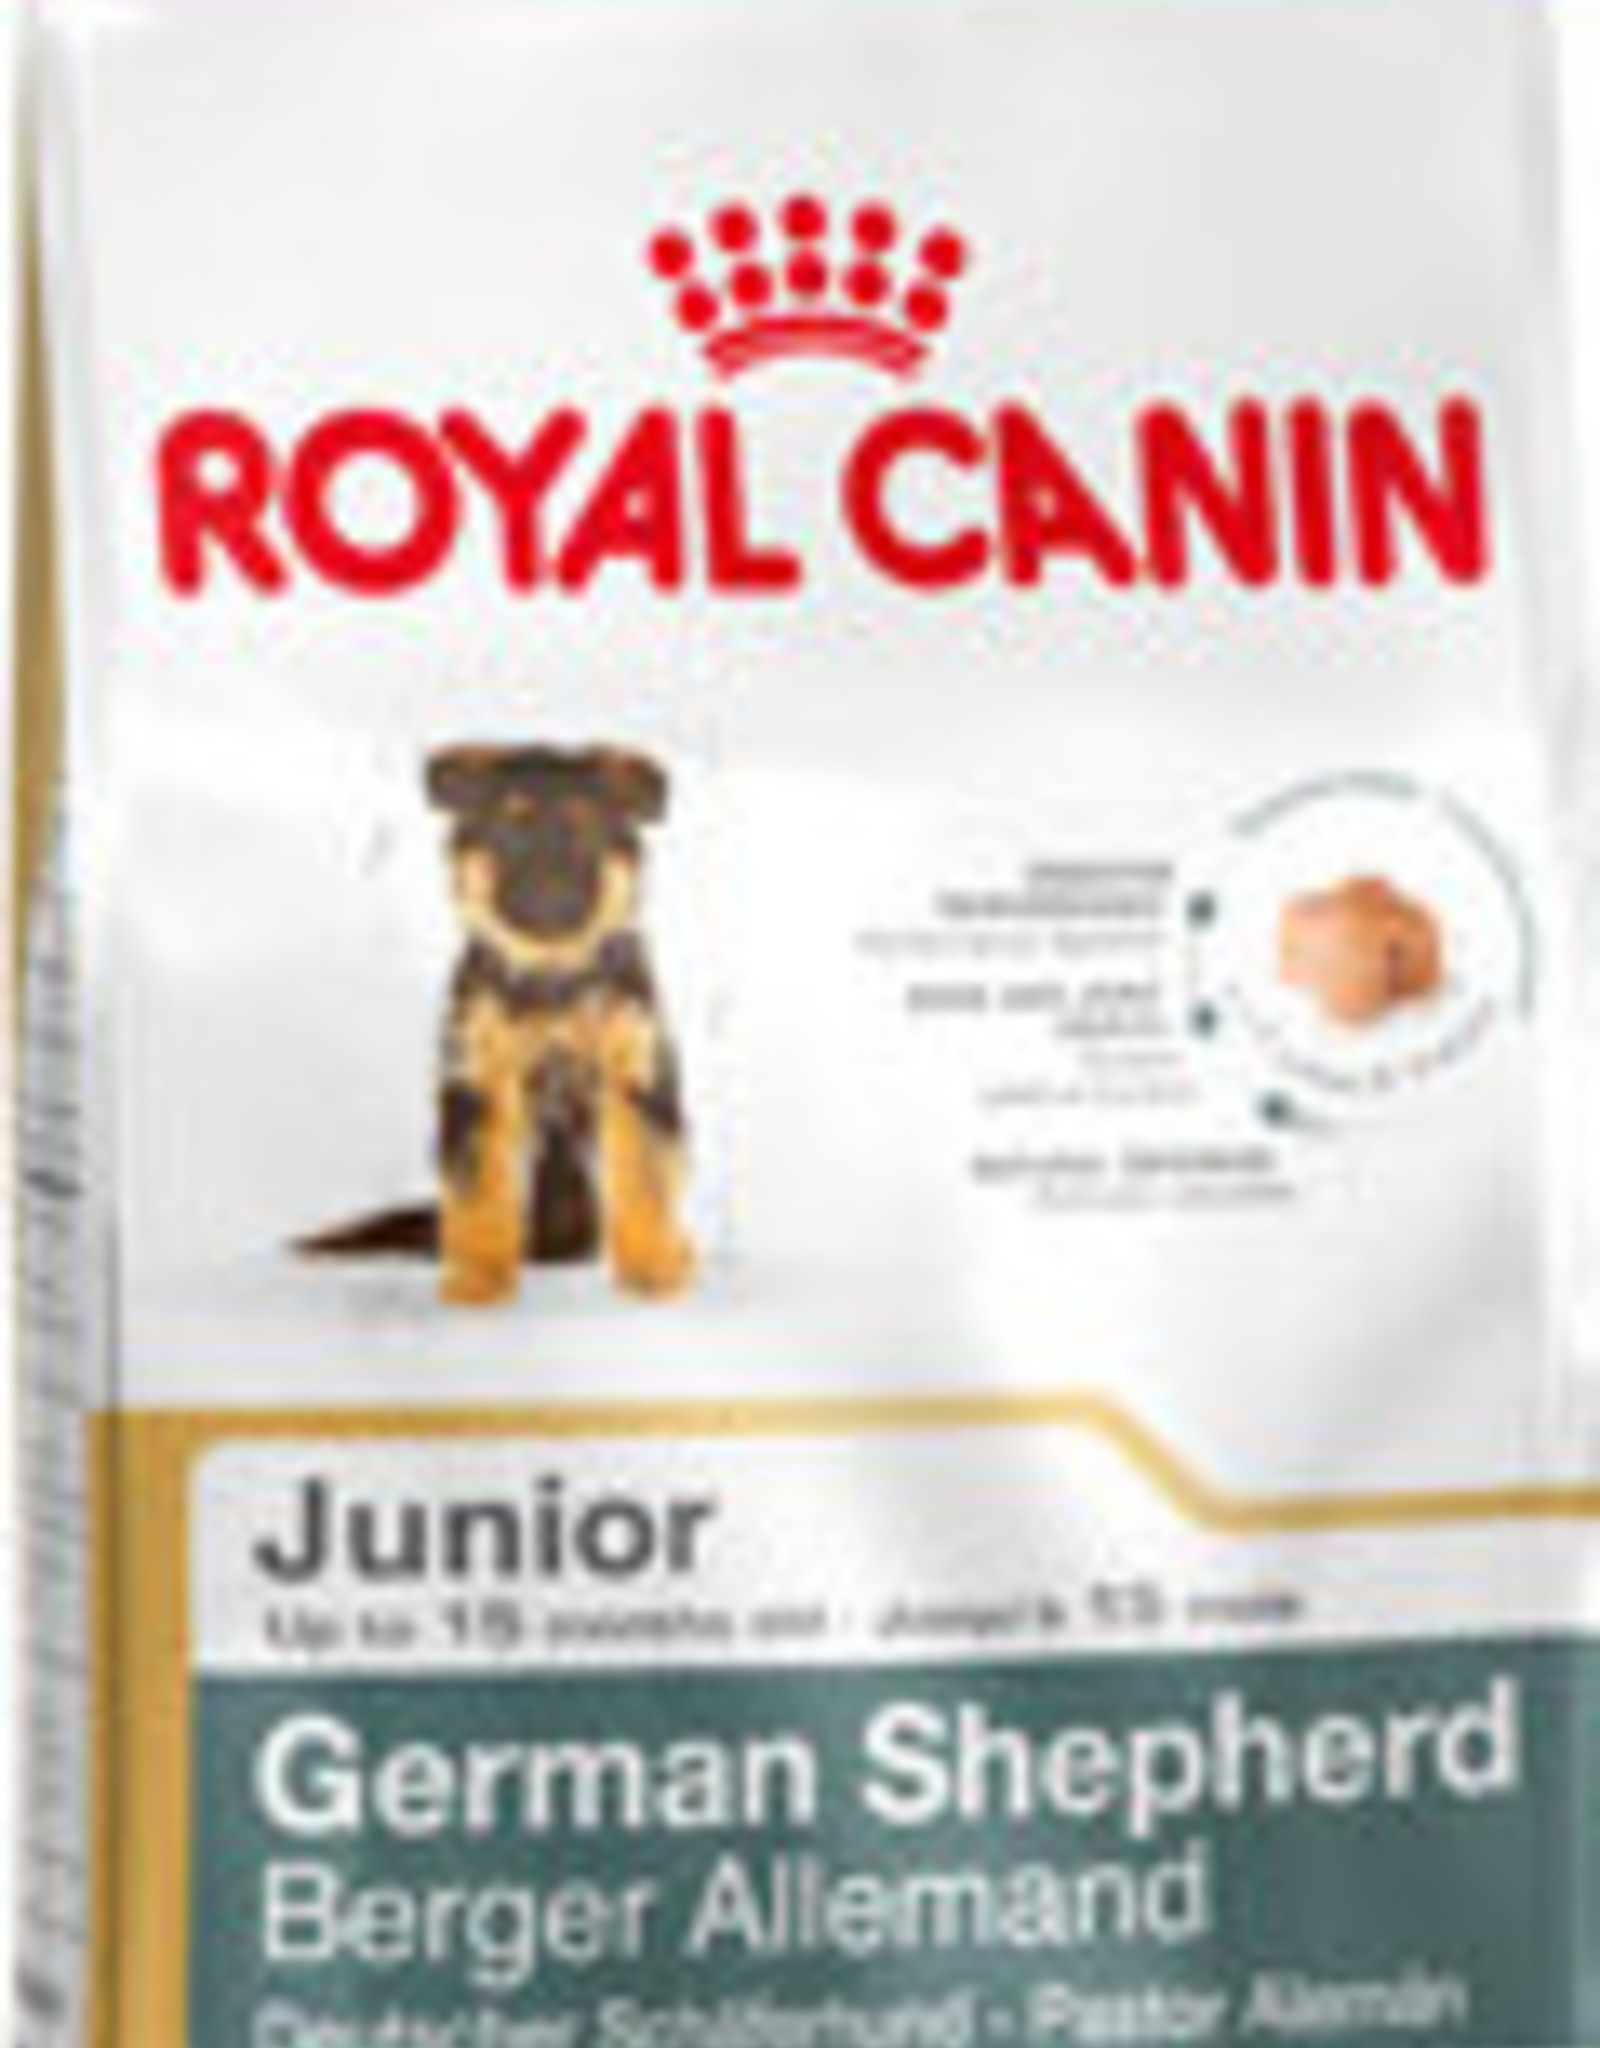 Royal Canin Royal Canin Bhn German Shepherd Junior 12kg